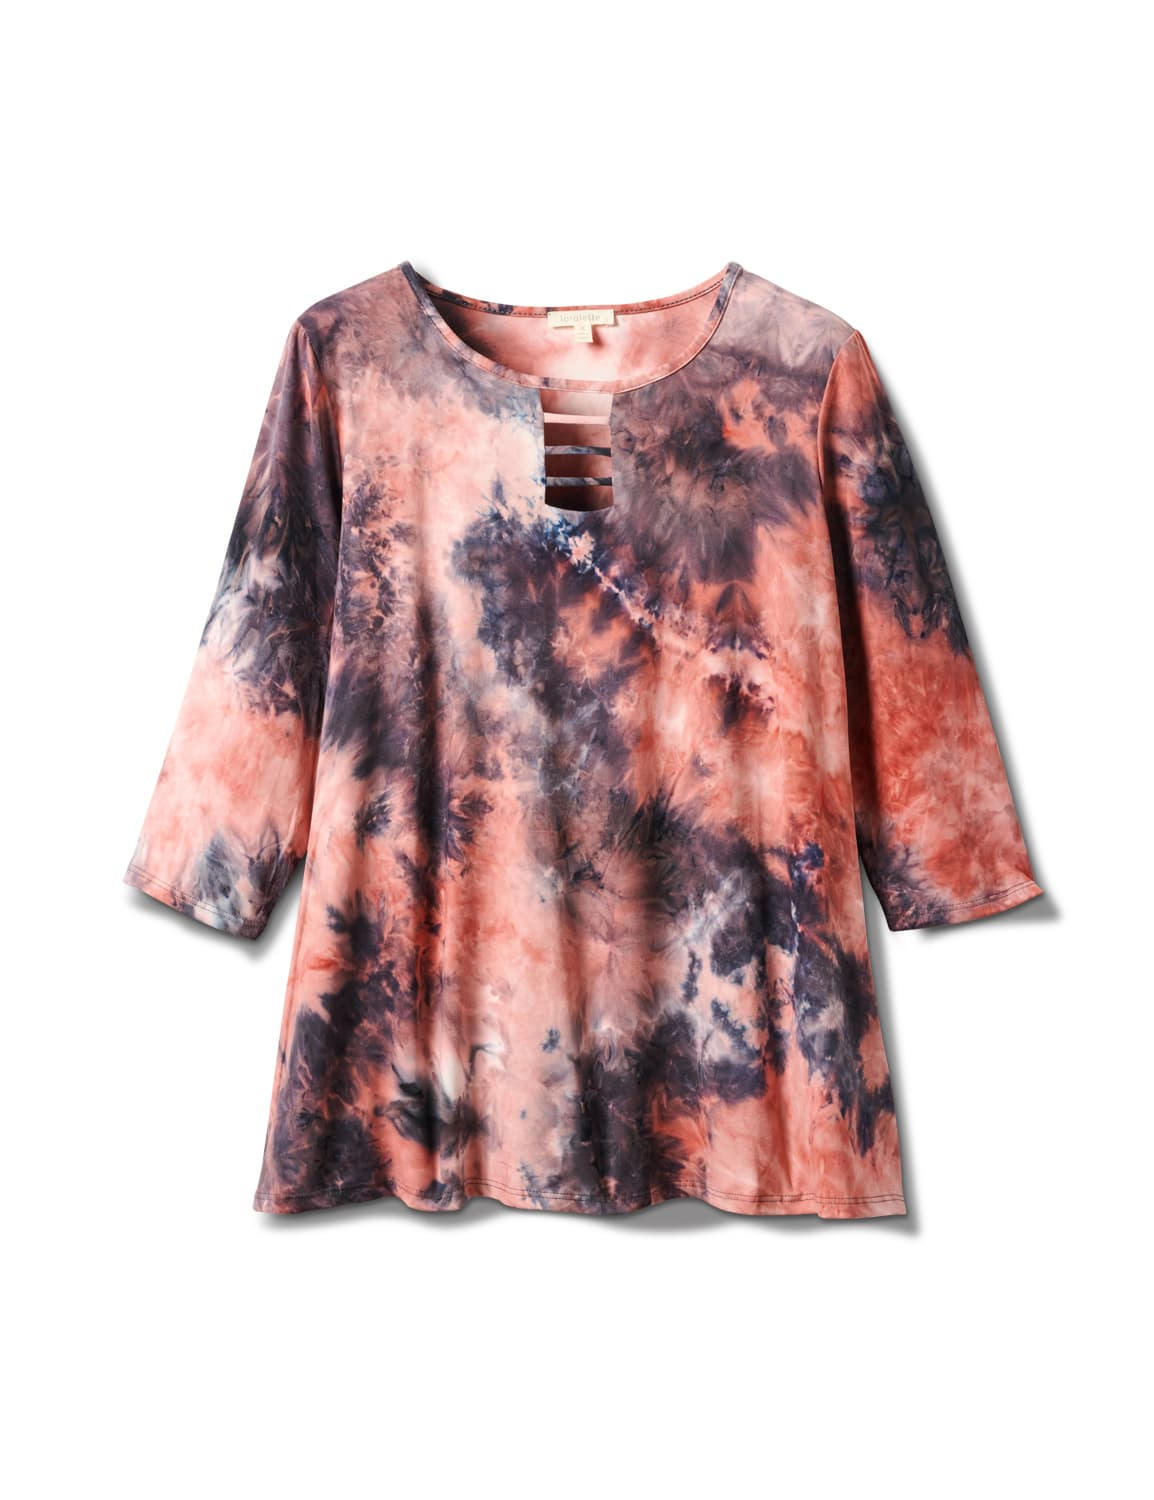 Lattice Neck Tie Dye Knit Top - Pink/Blue - Front